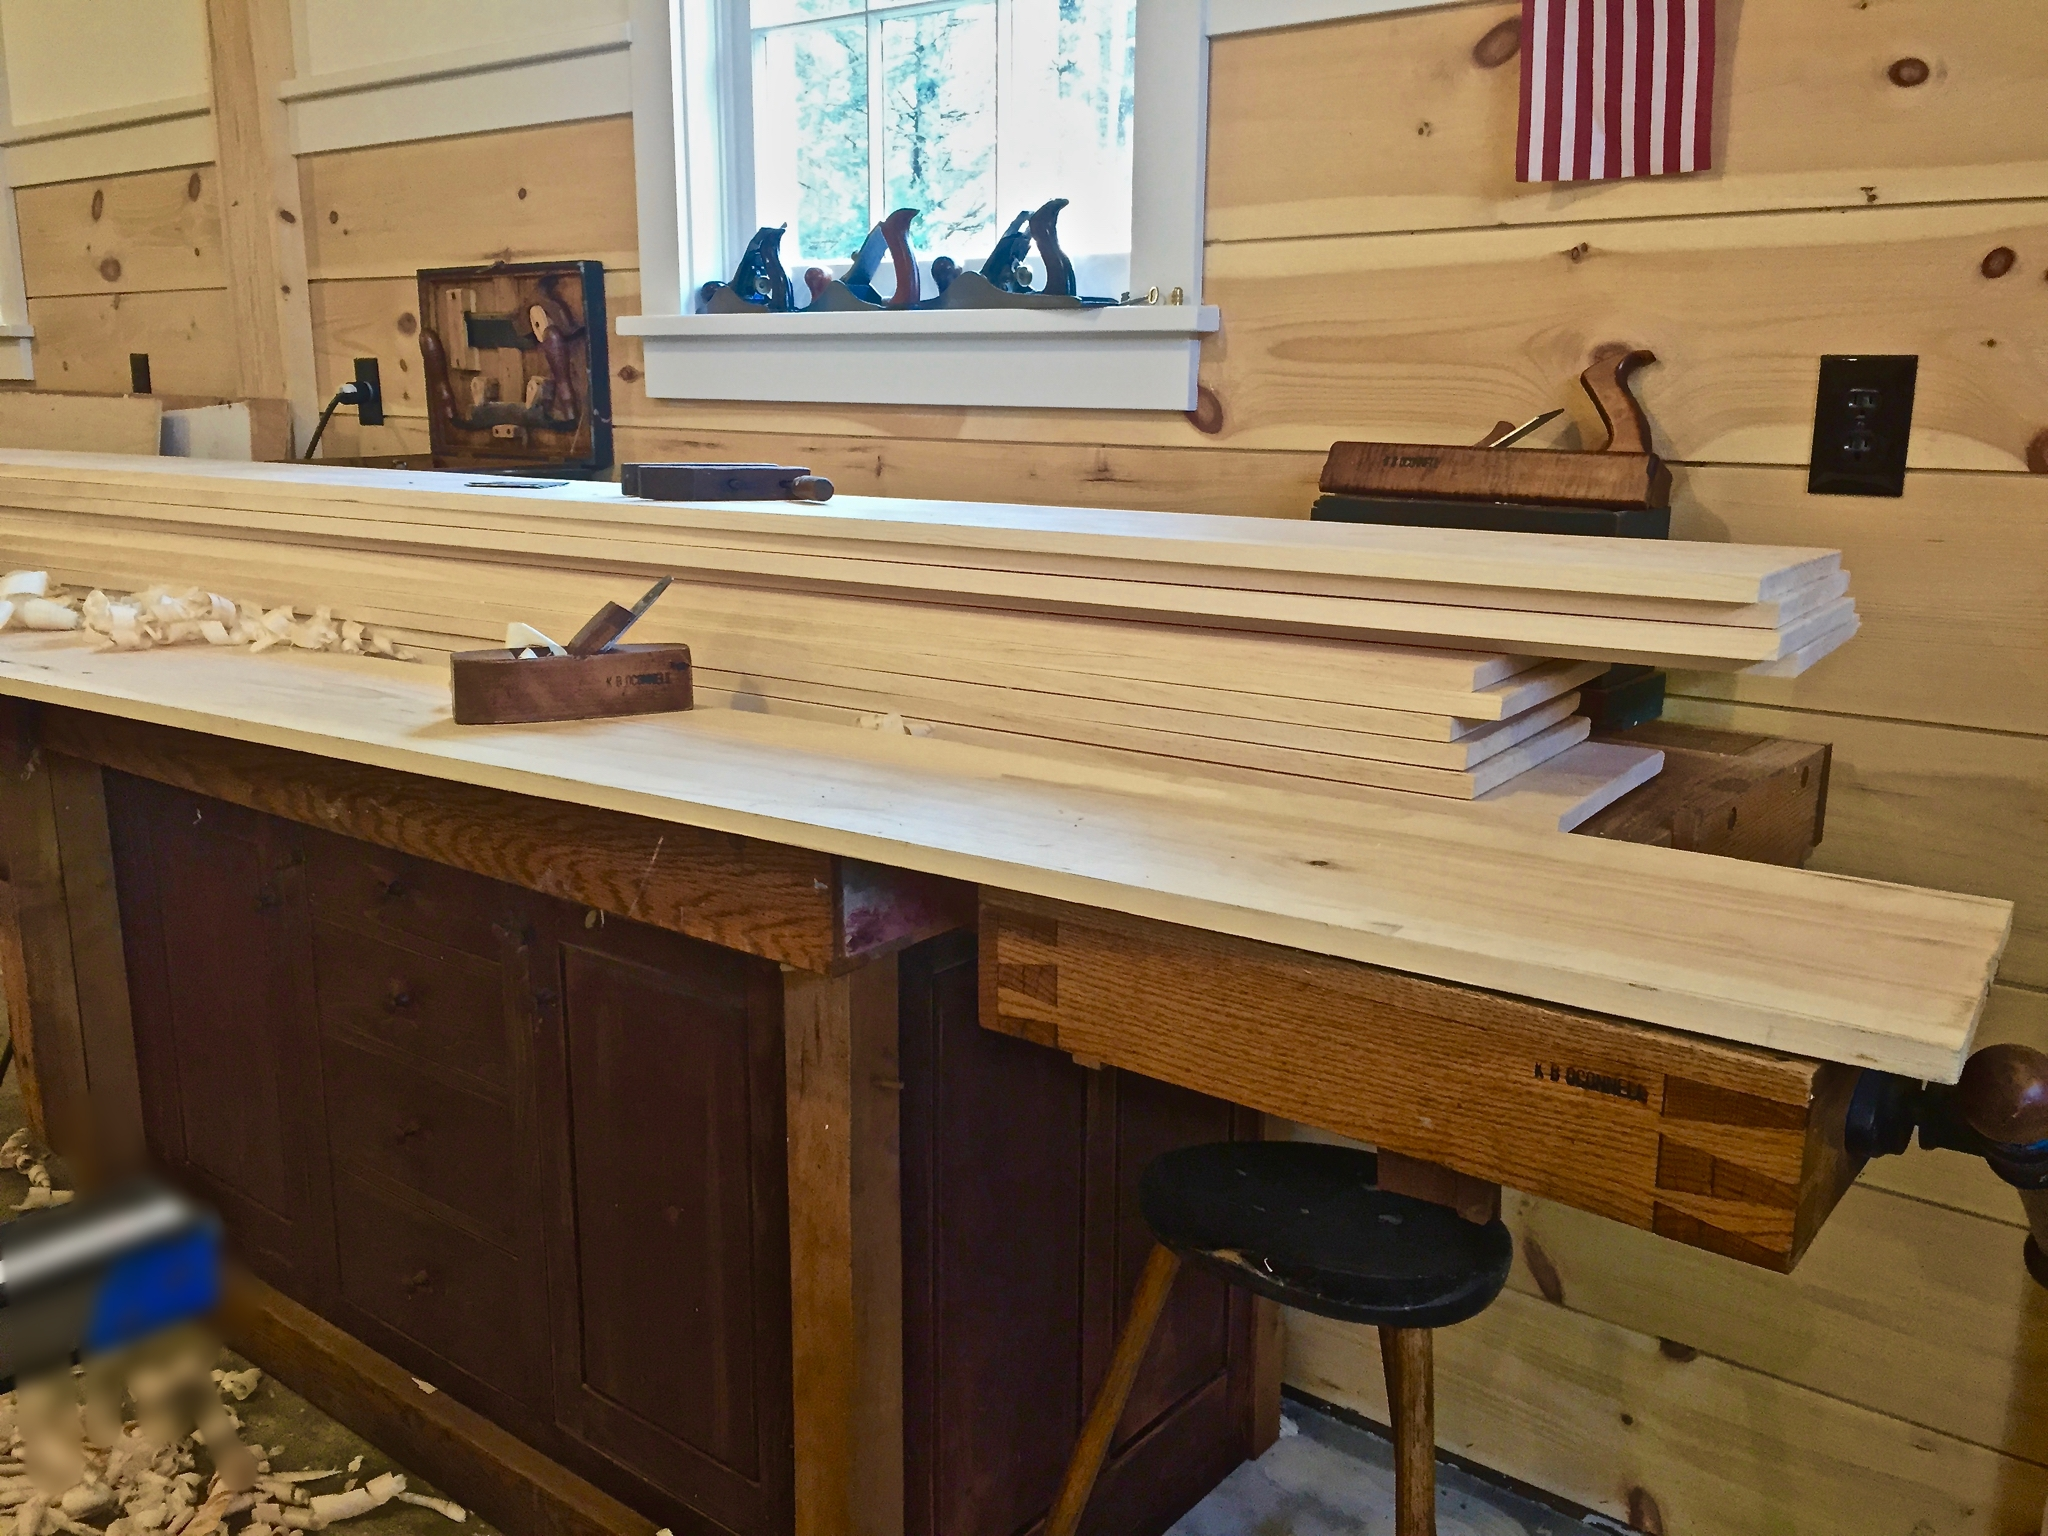 Preparing to hand Plane some new flooring - the first step in replicating a Antique Wide Pine Floor